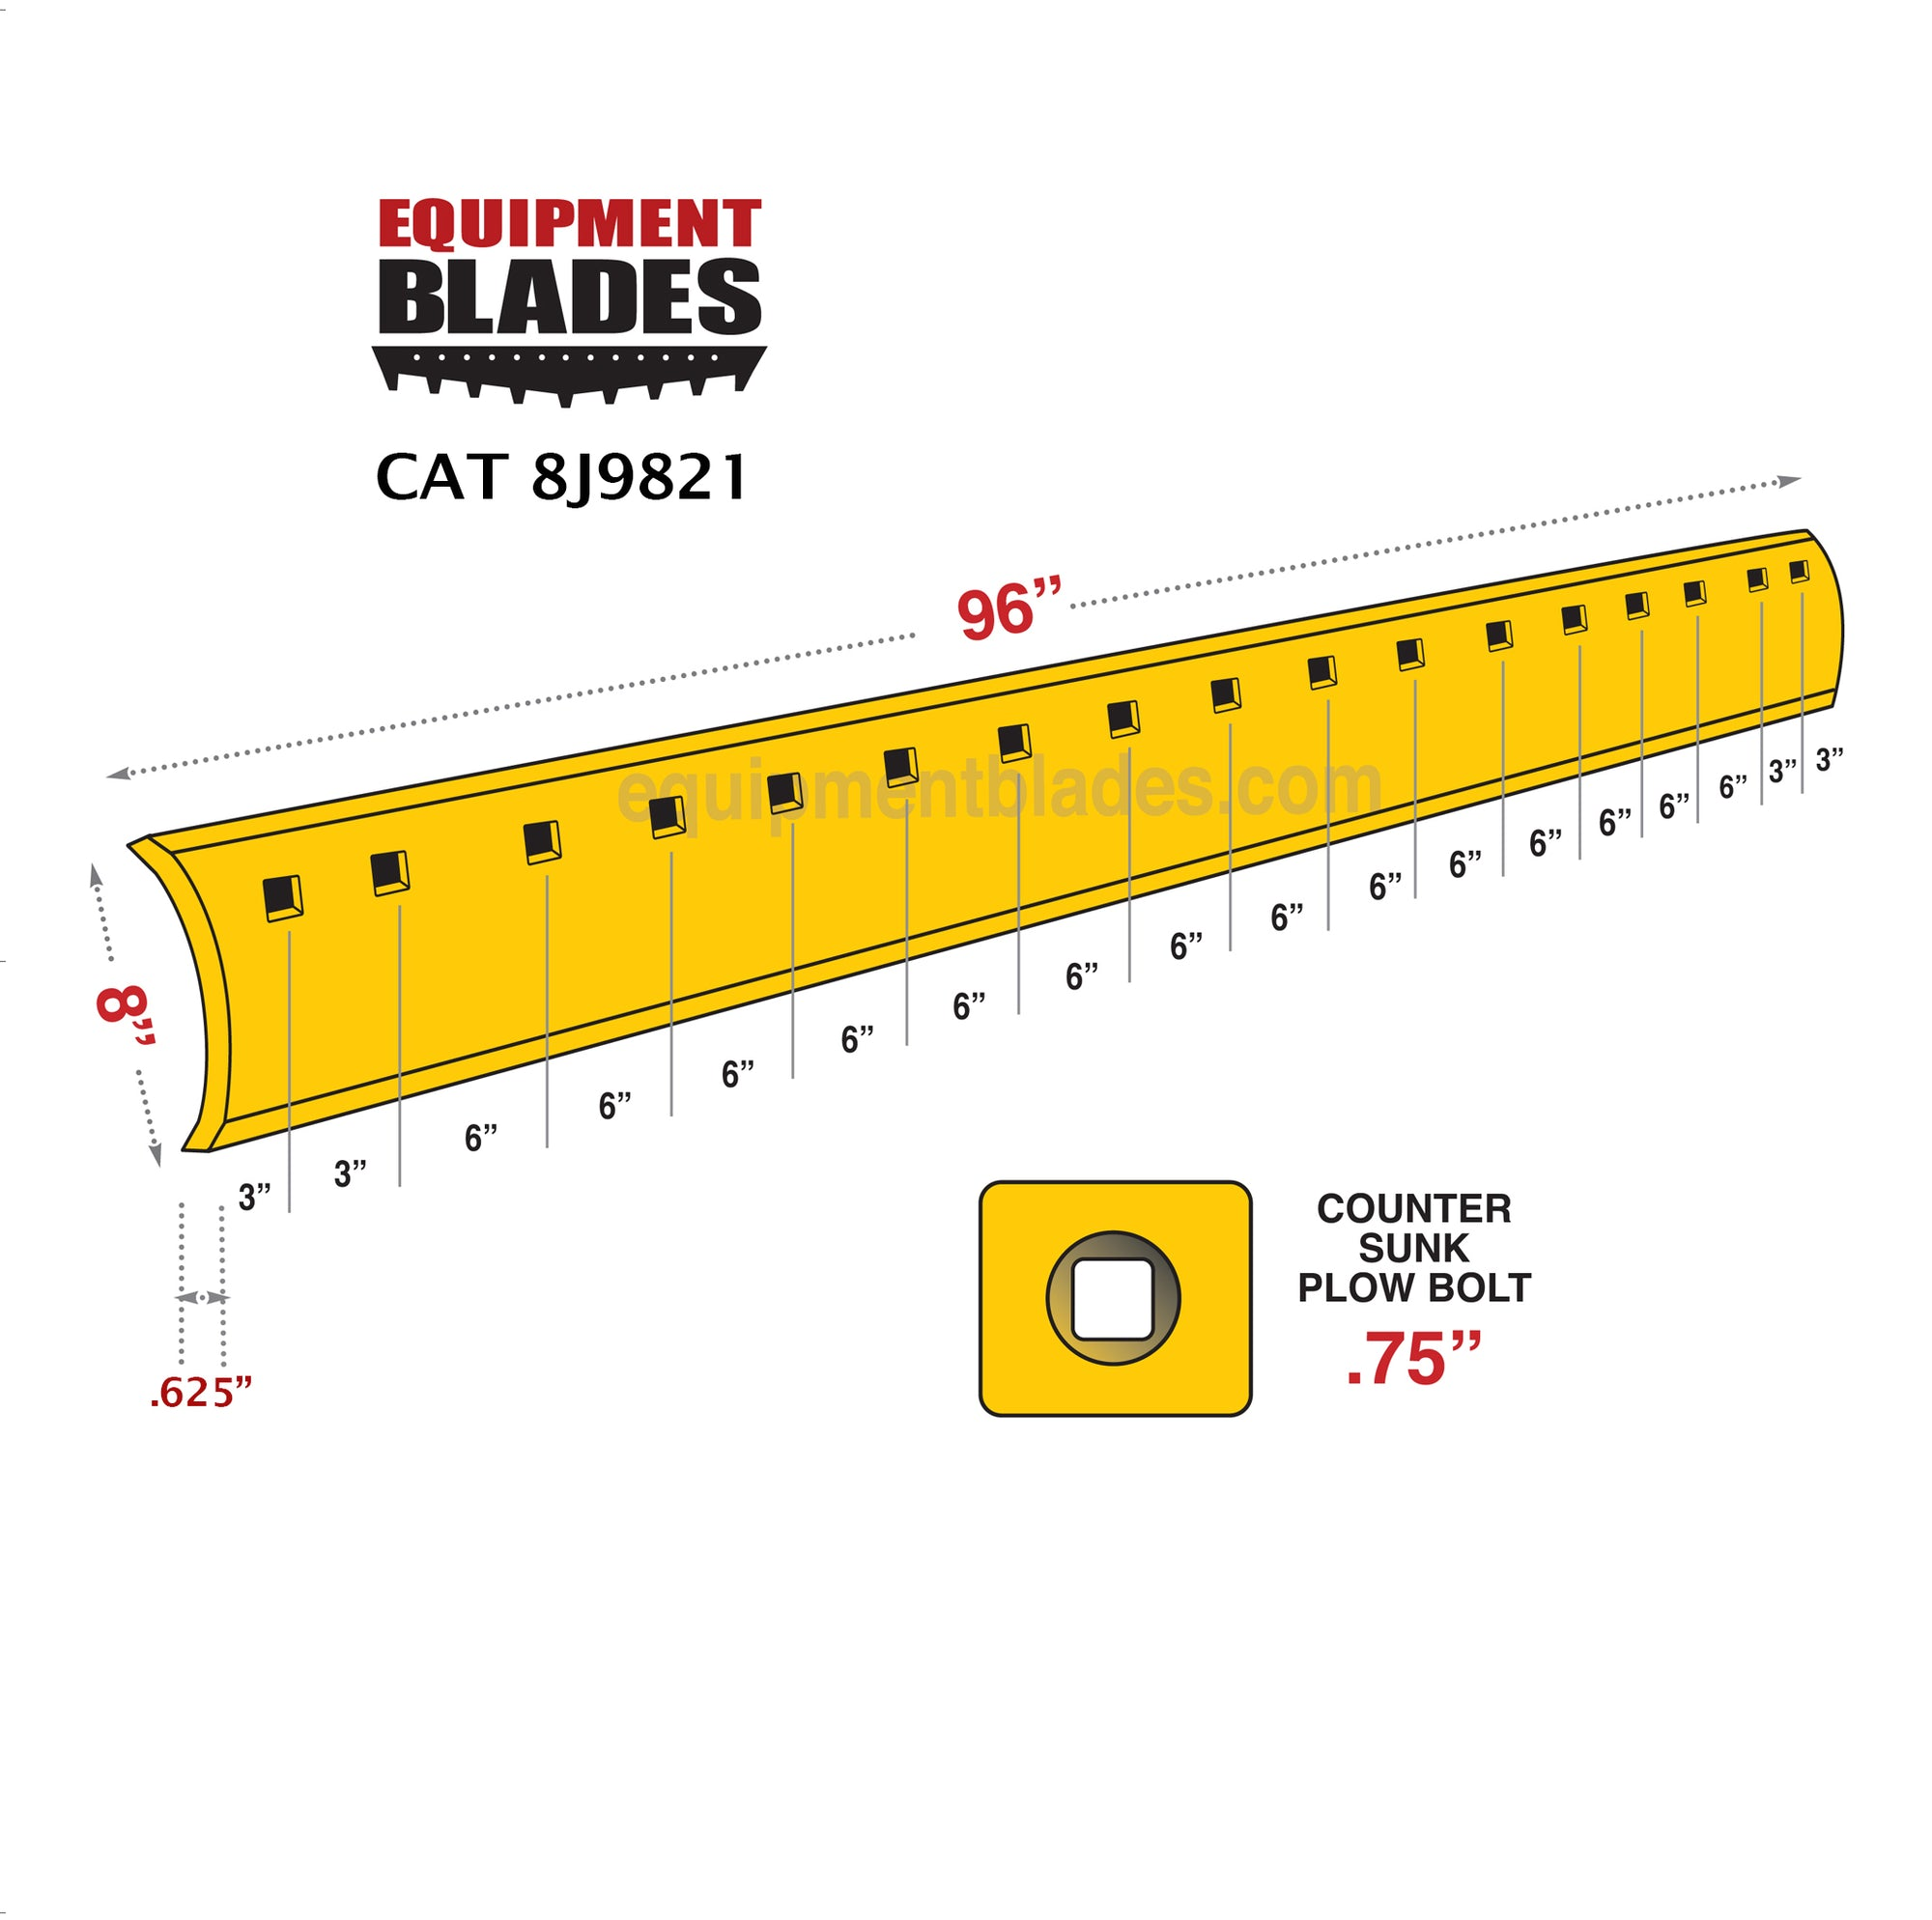 CAT 8J9821-Equipment Blades-Equipment Blades Inc